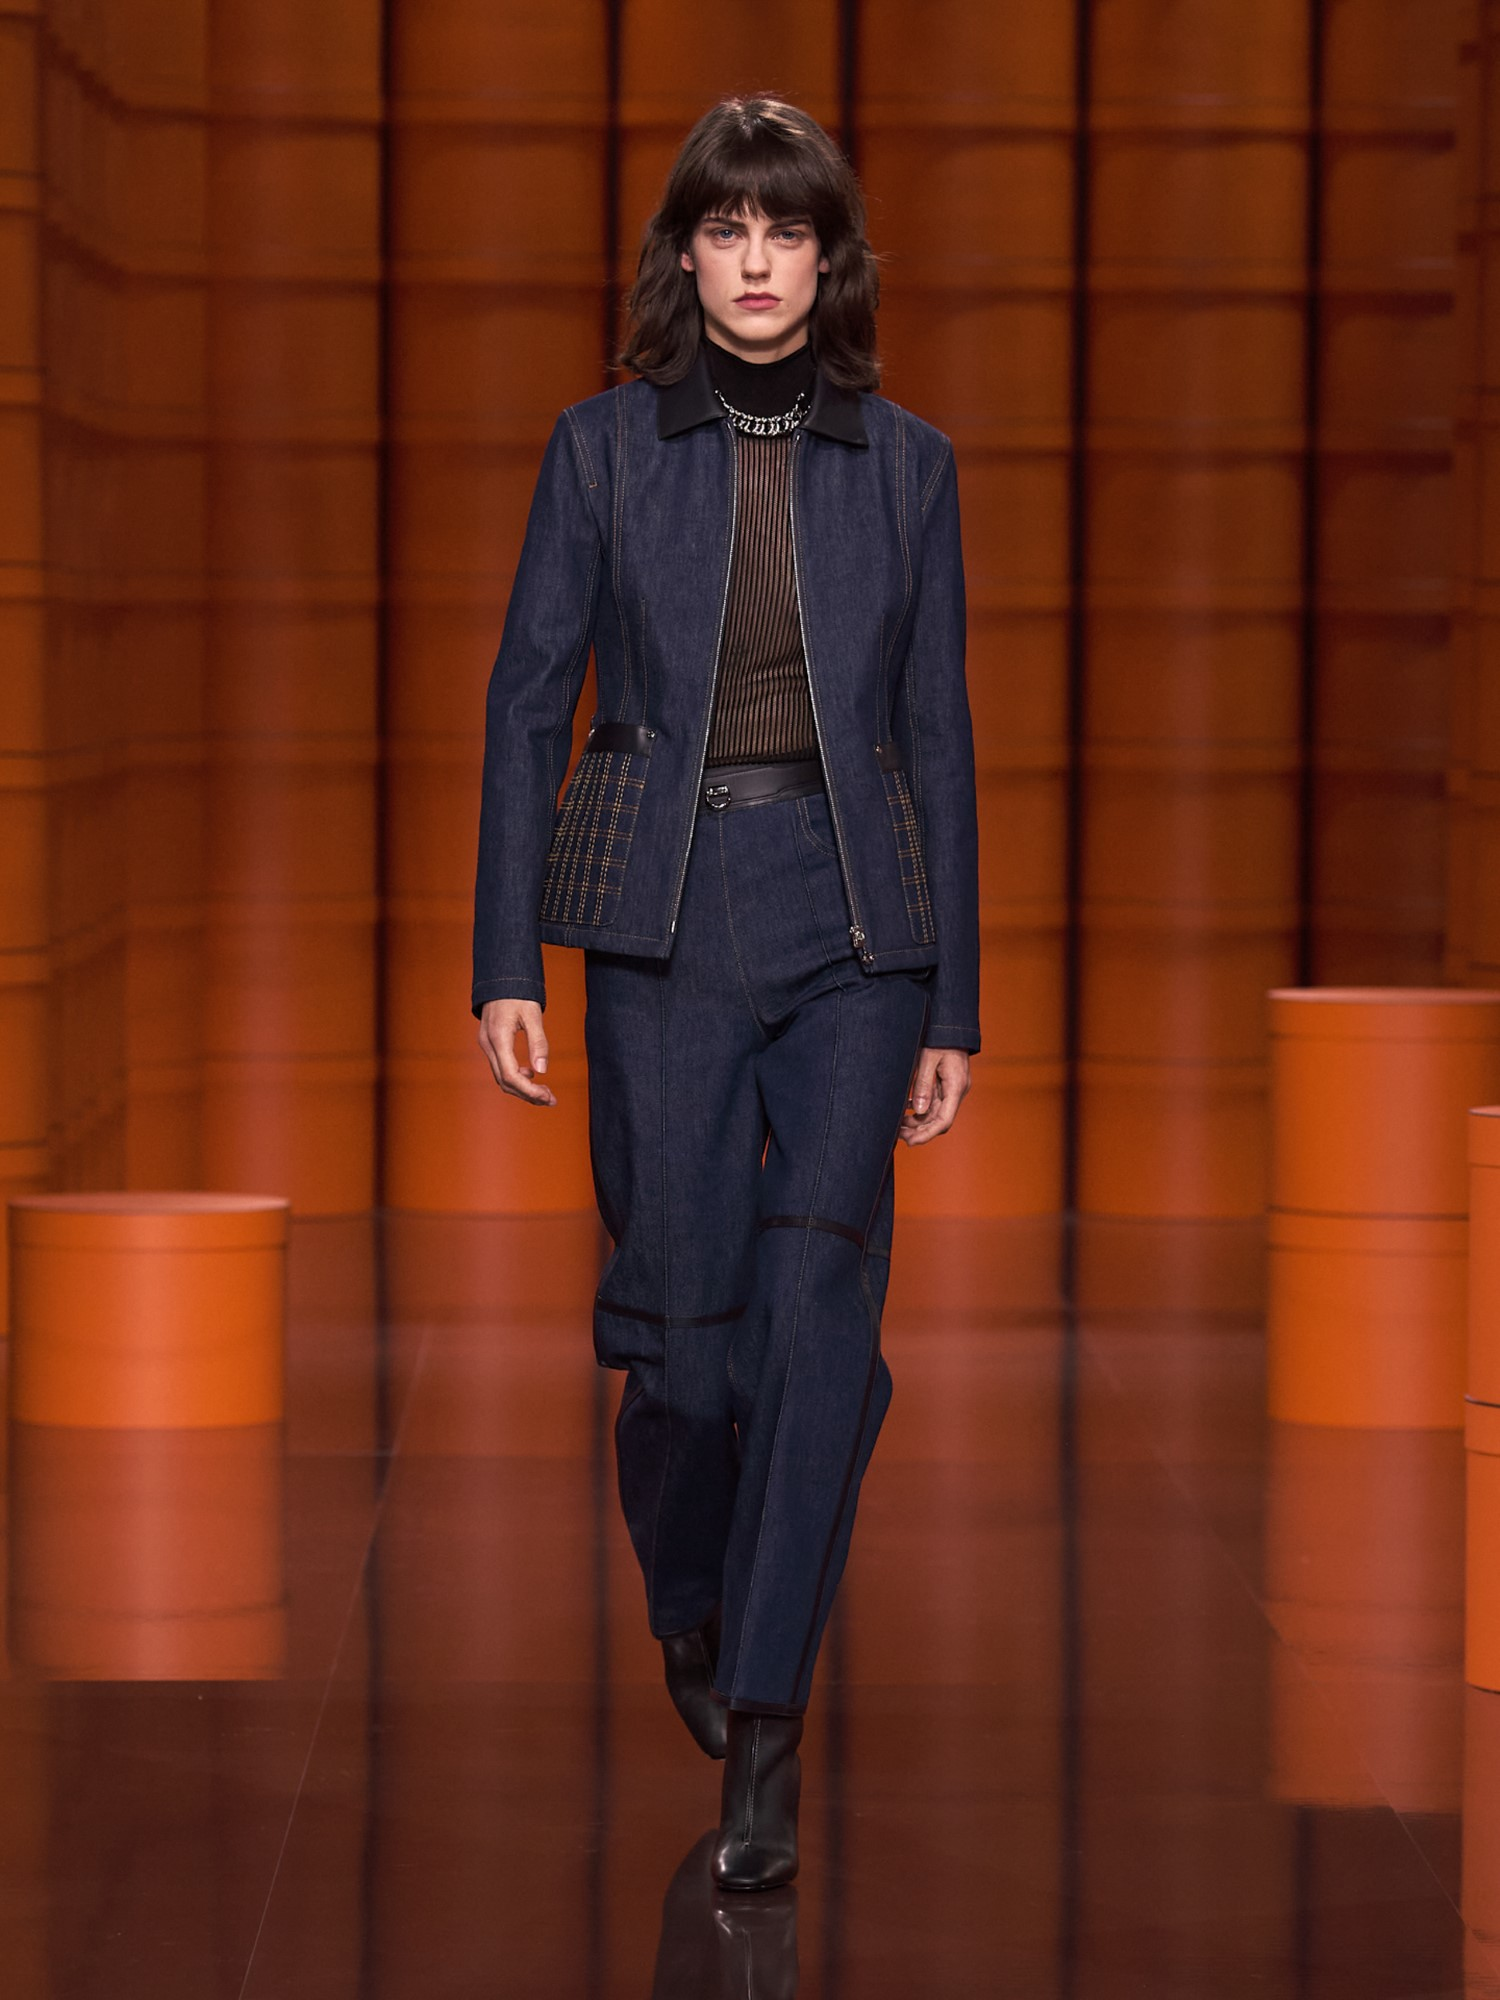 Hermès Fall Winter 2021 - Paris Fashion Week